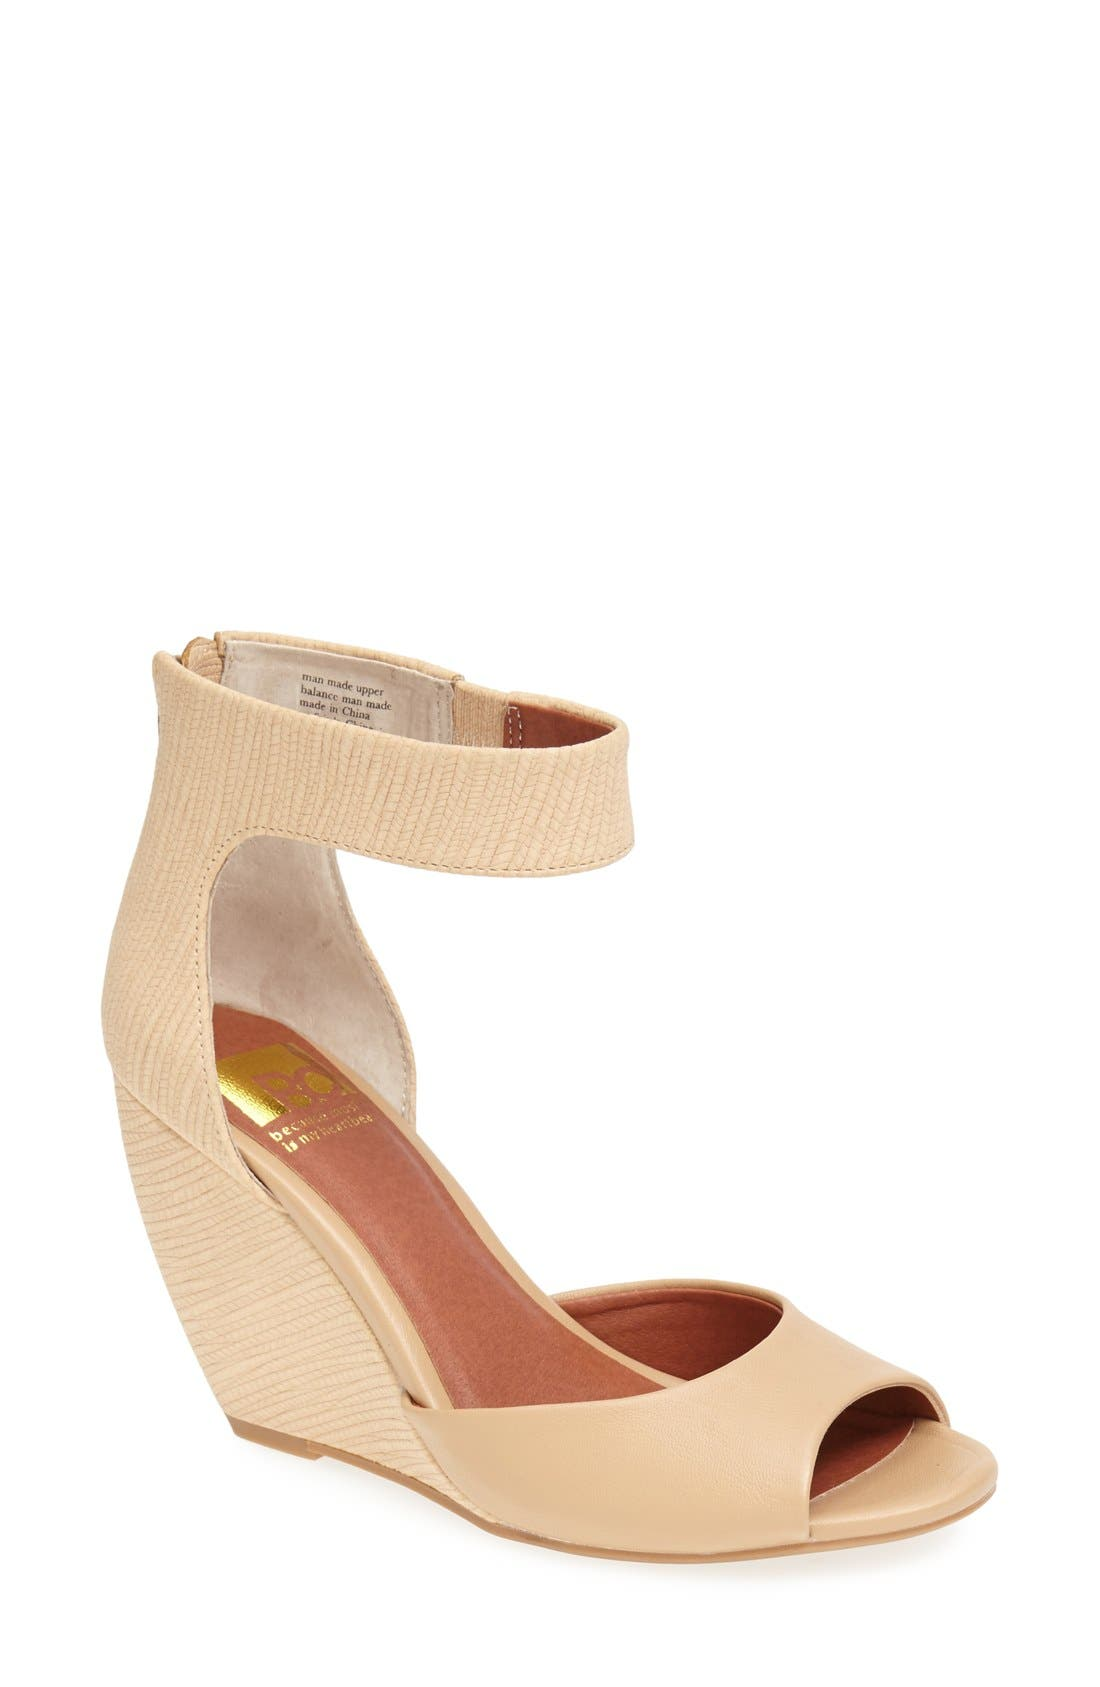 Main Image - BC Footwear 'Deep Down' Wedge Sandal (Women)